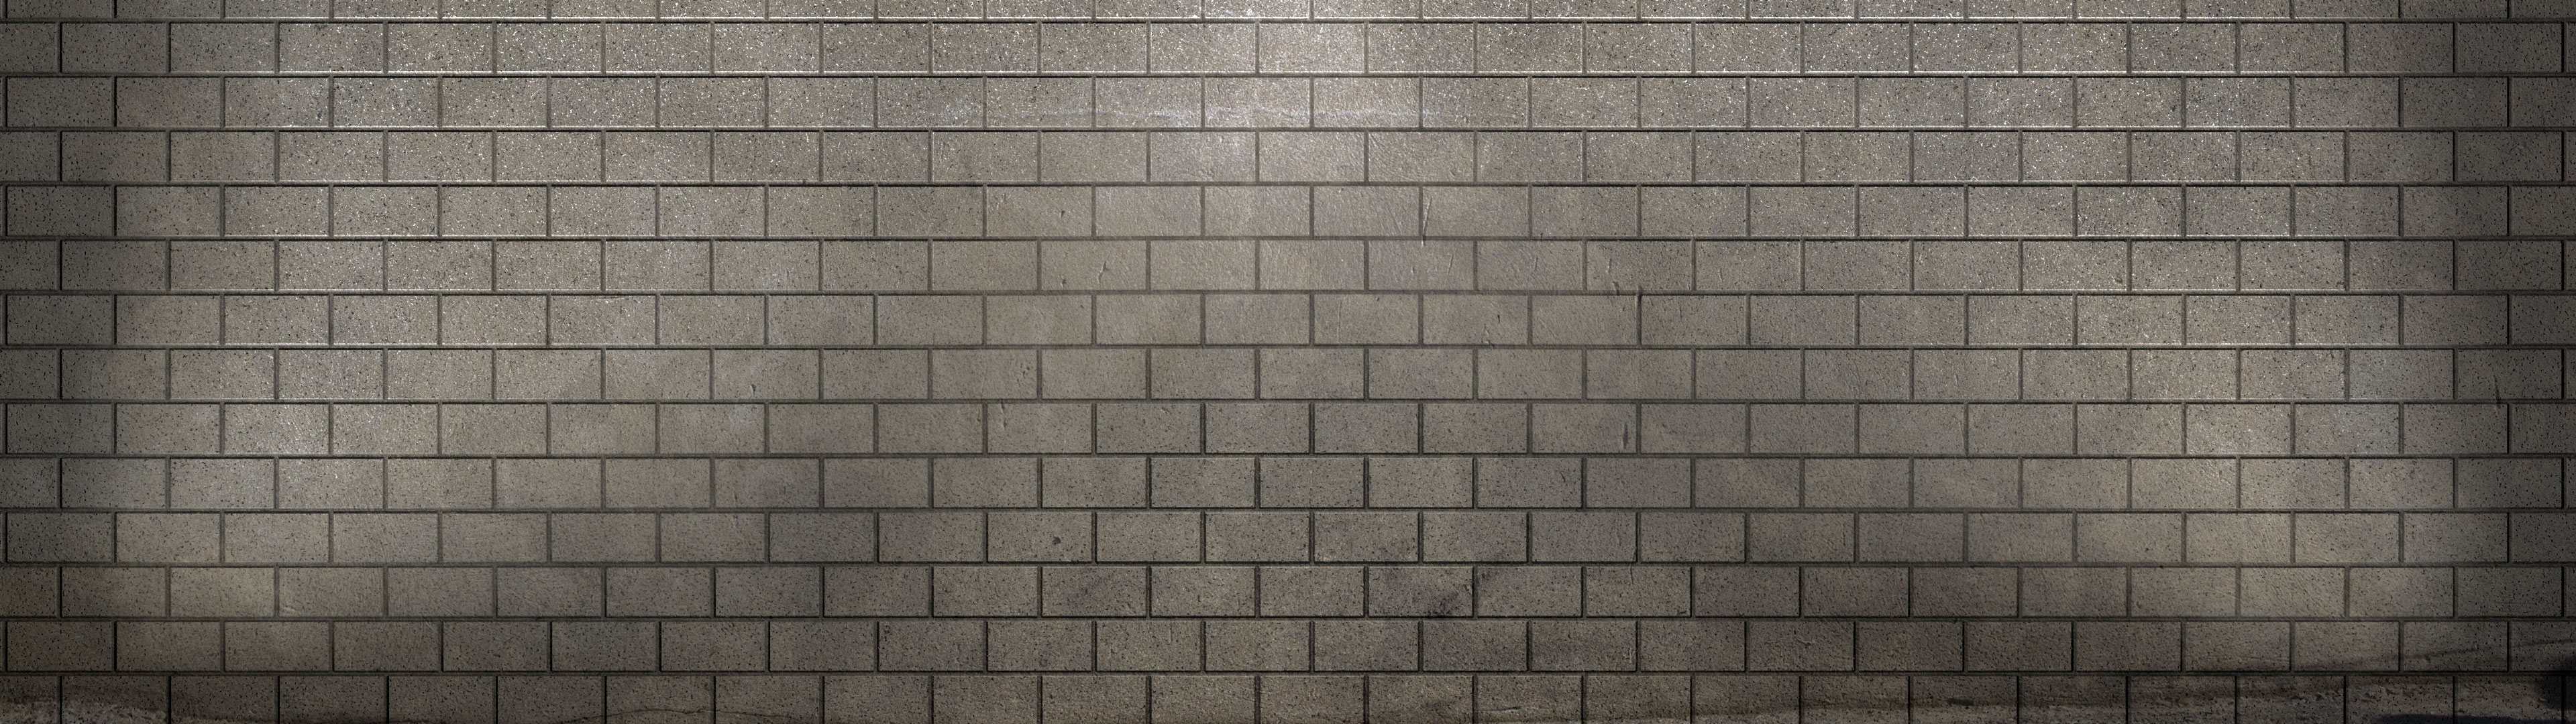 Wall Texture PPT Backgrounds